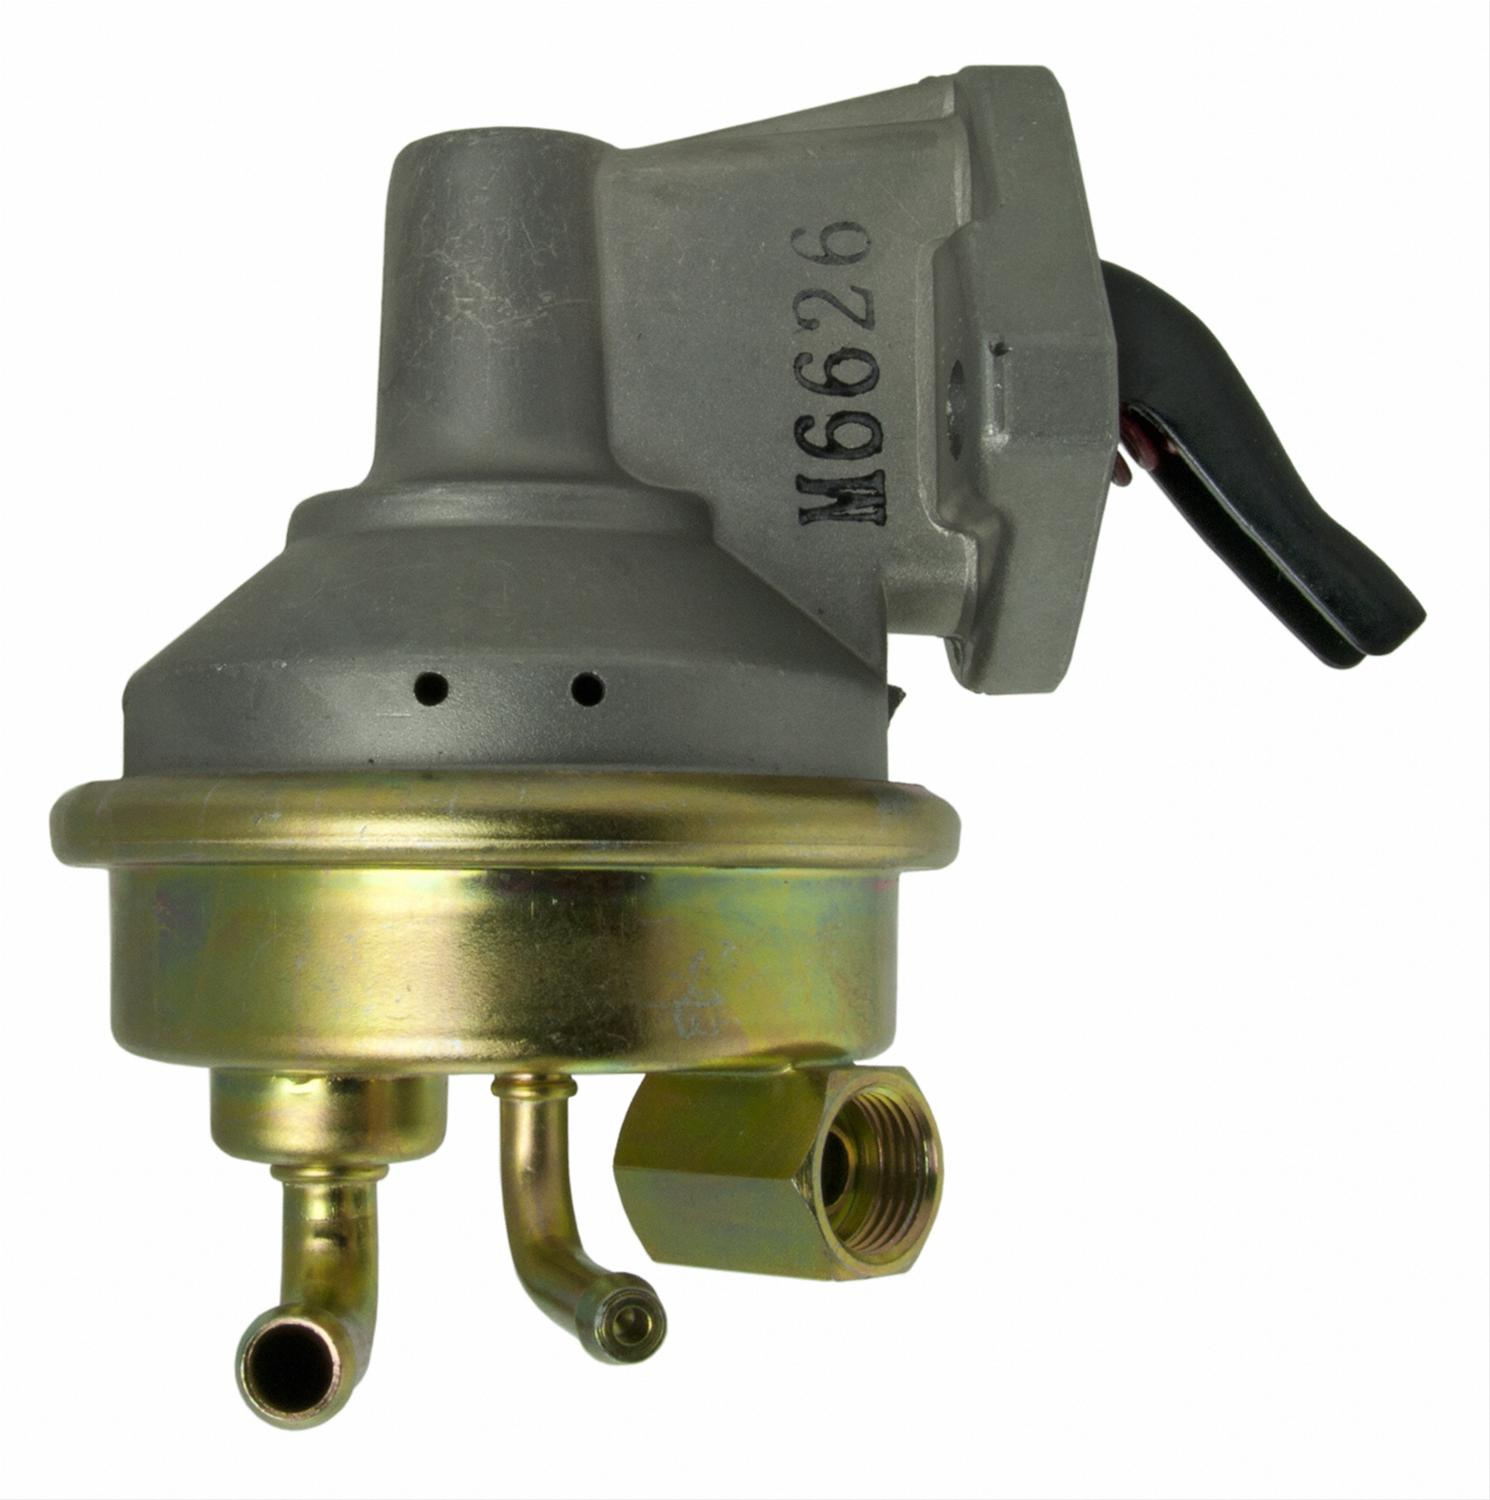 hight resolution of carter muscle car mechanical fuel pumps m6626 free shipping on orders over 99 at summit racing